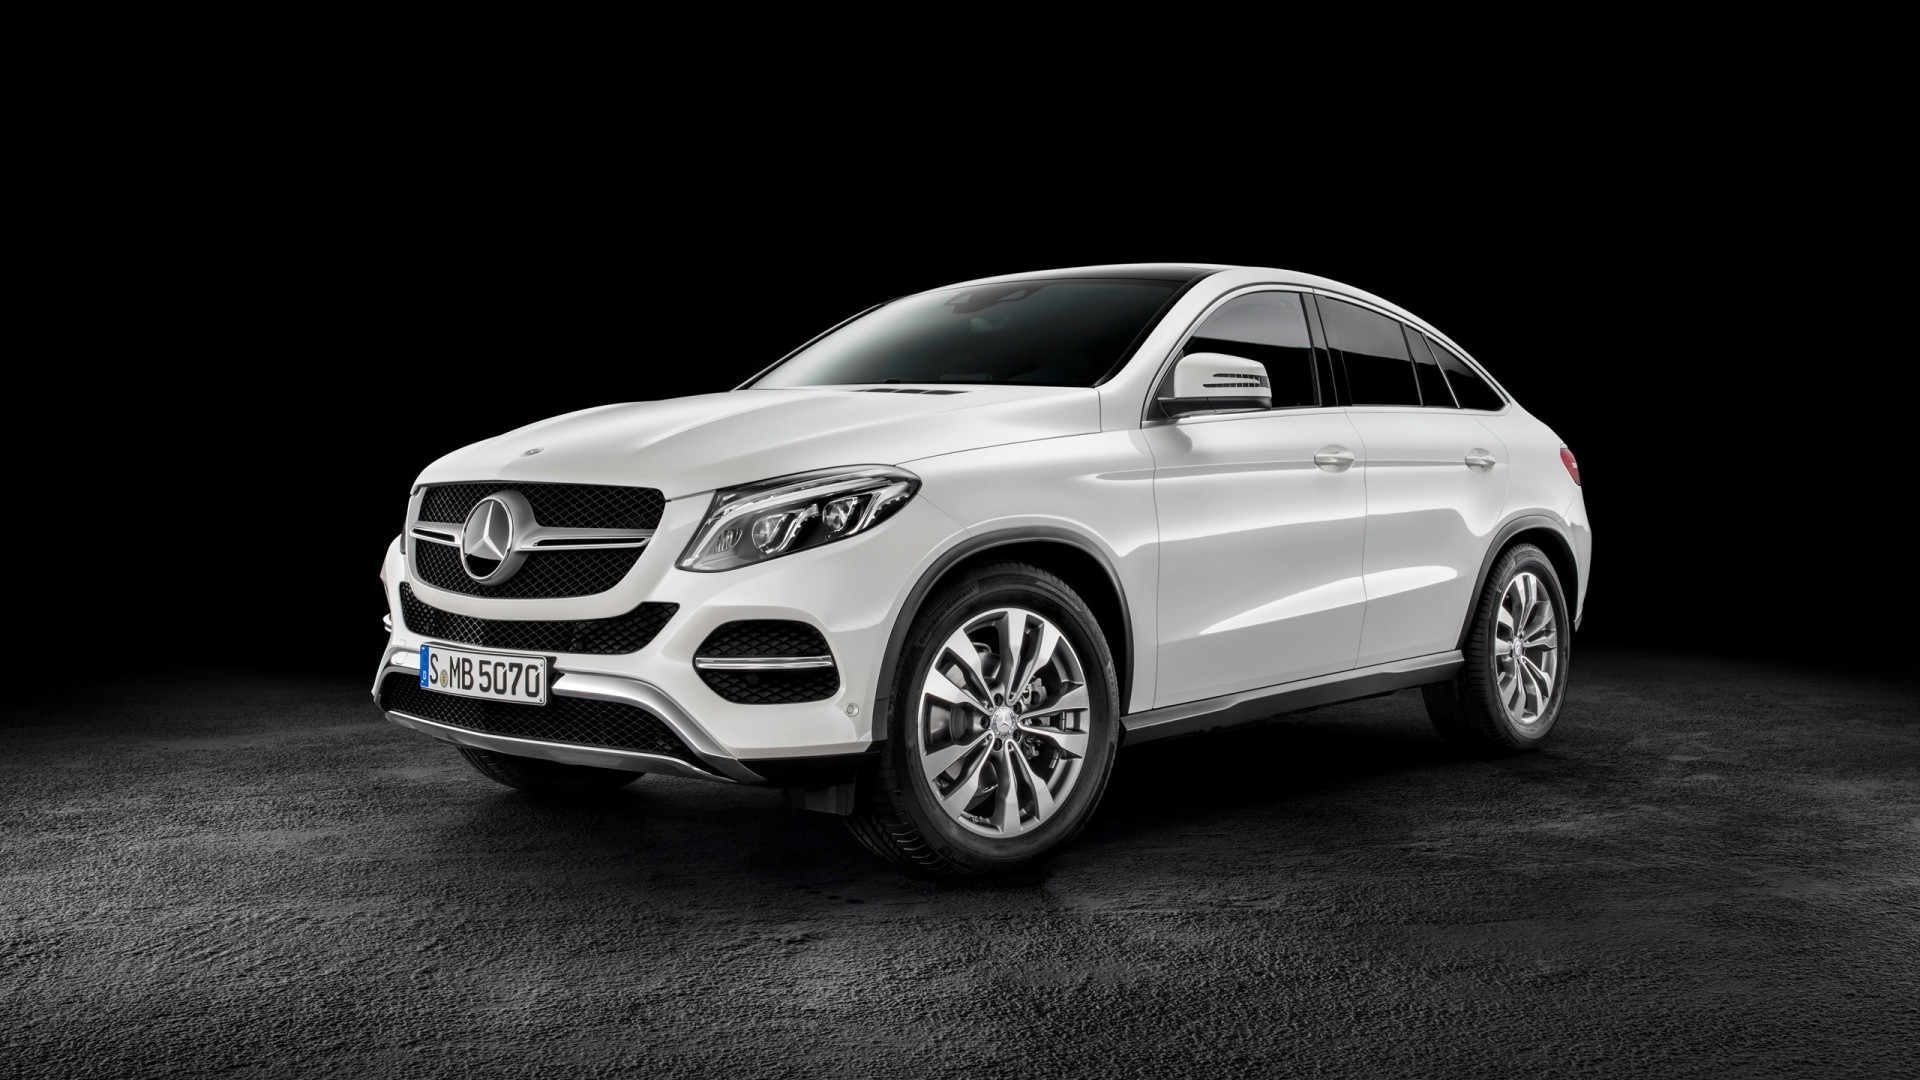 2015 mercedes benz gle coupe wallpaper hd car wallpapers for 1920 mercedes benz